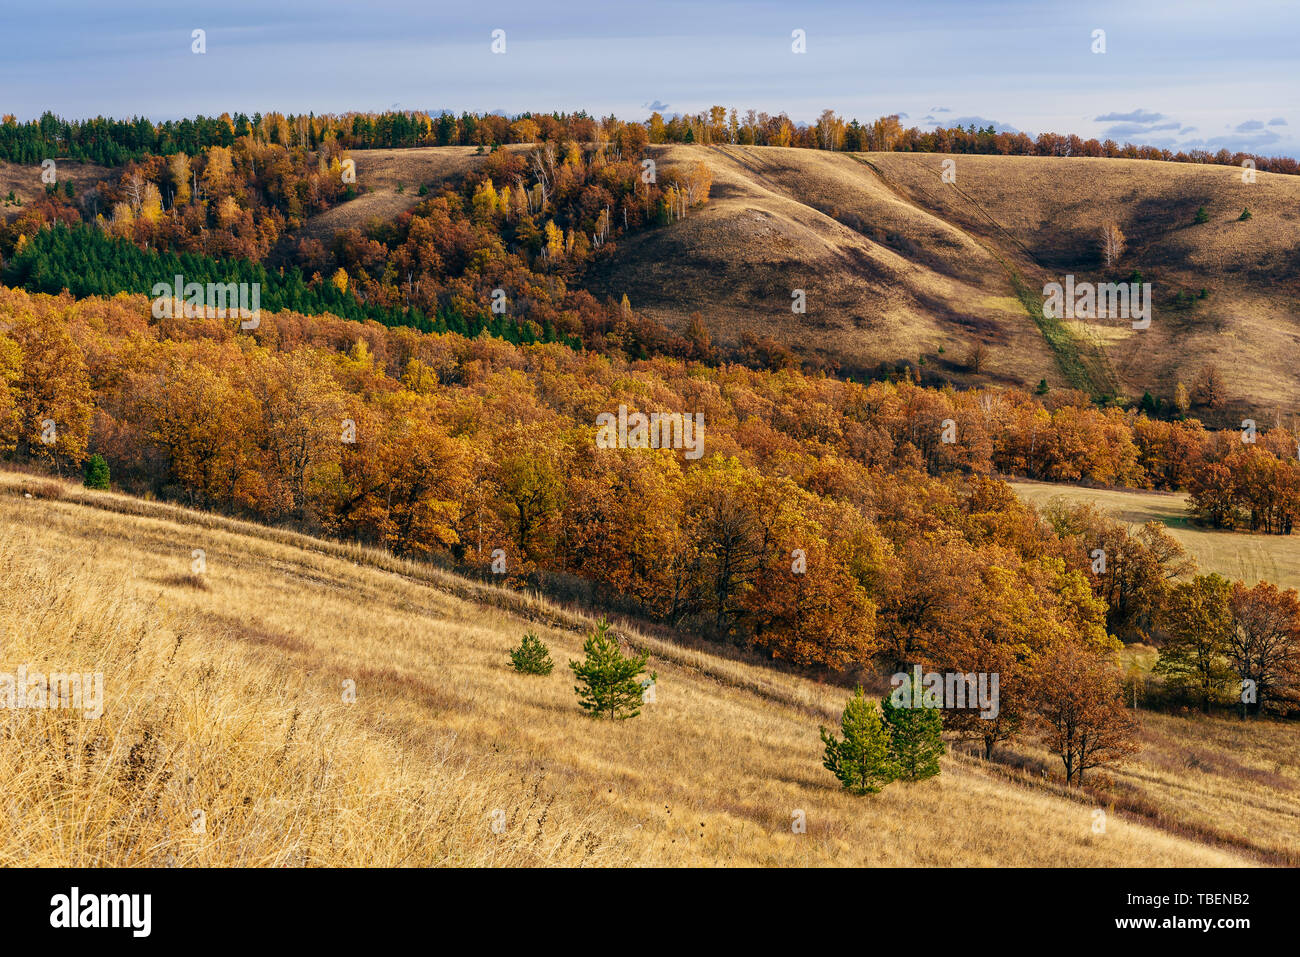 Autumnal forest on the hillside - Stock Image